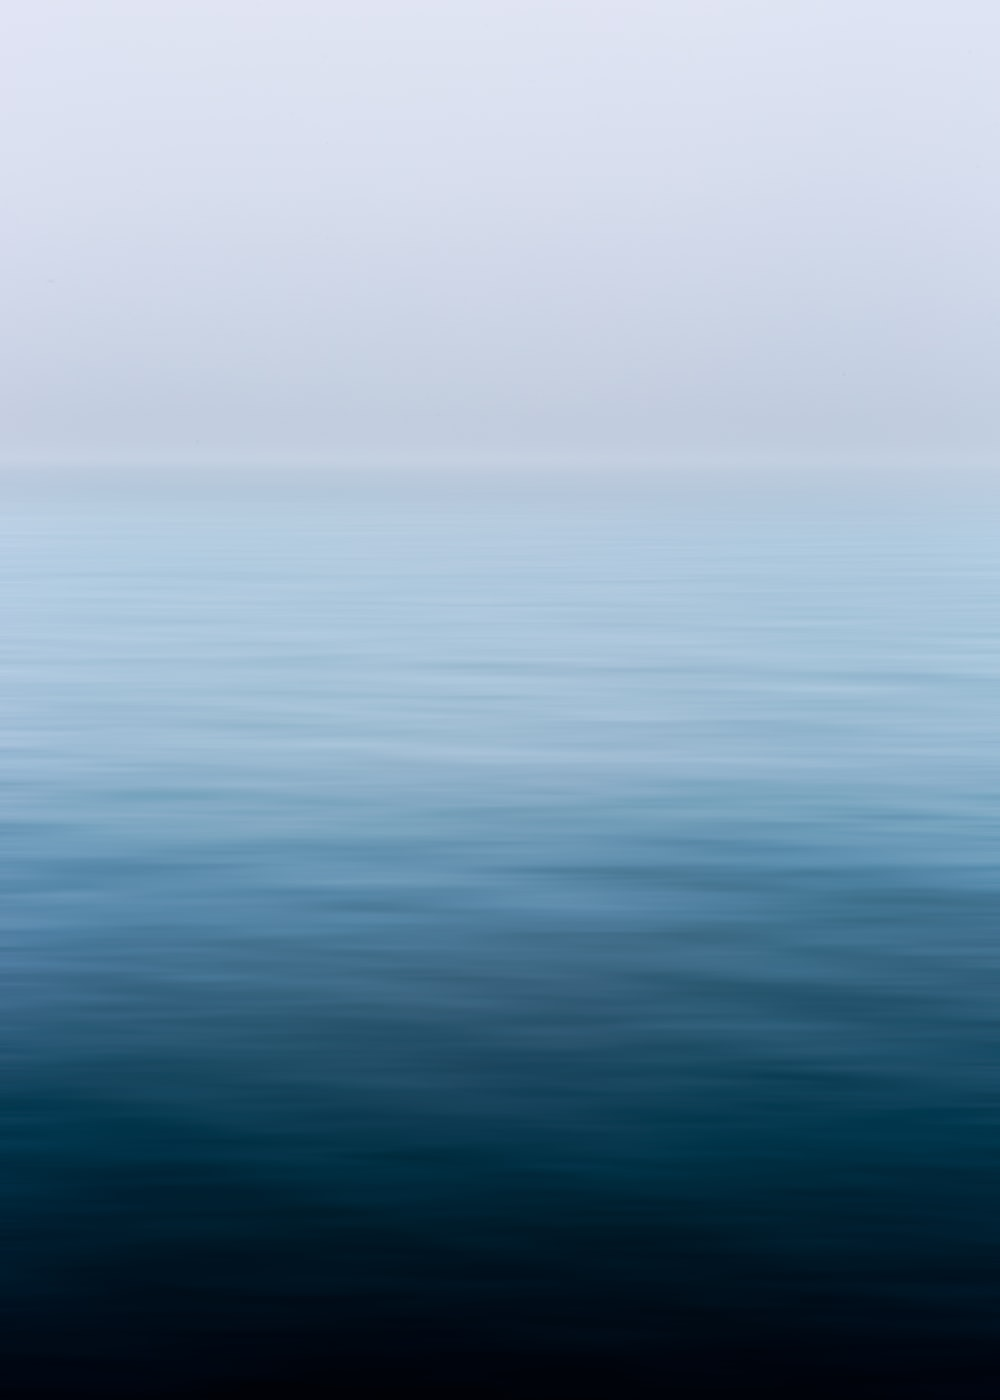 calm body of water